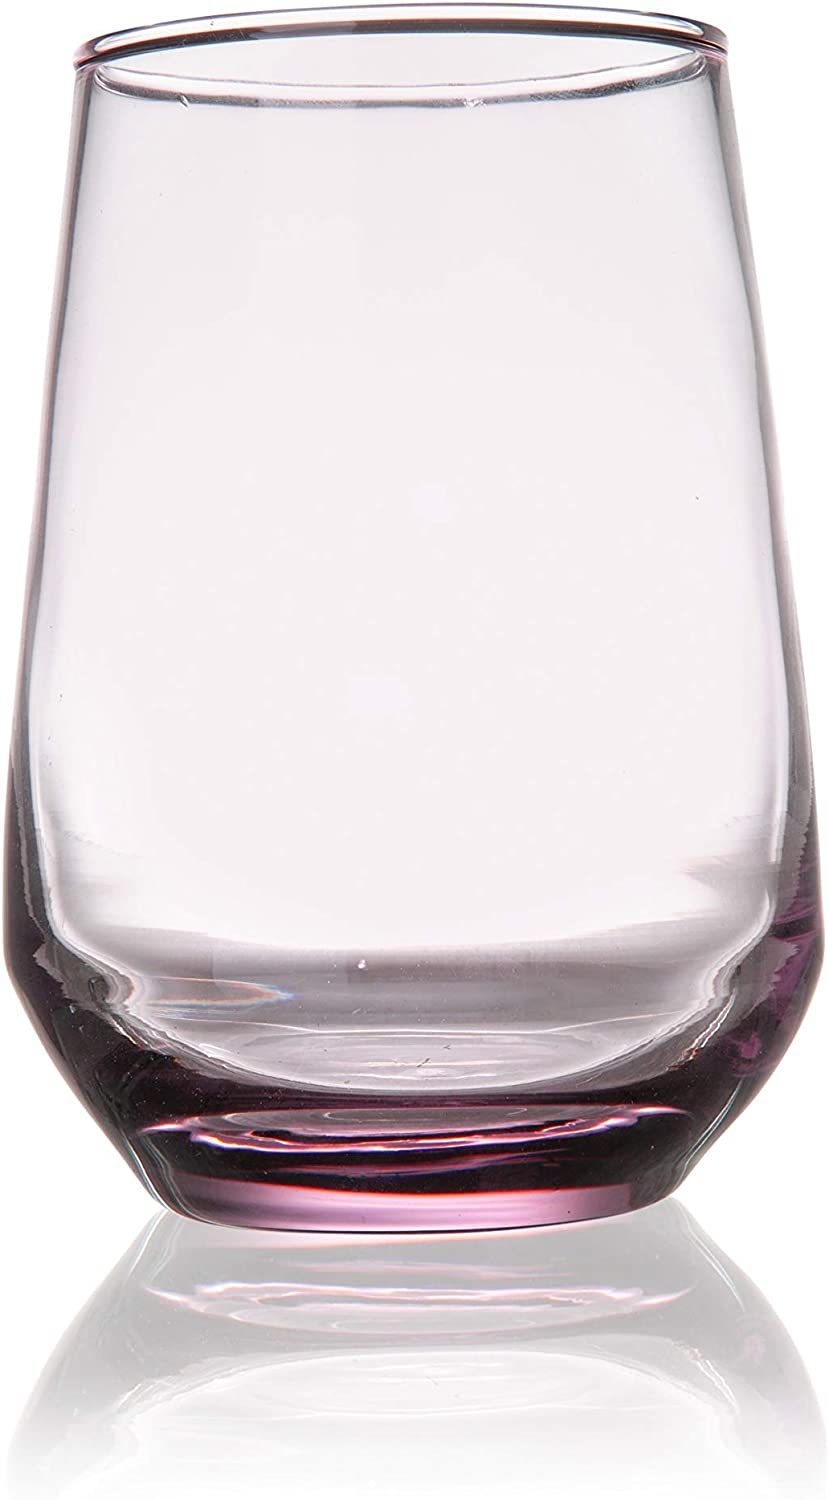 Burns Glass 13 OZ BRANDYWINE STEMLESS WINE Glasses Set of 6 I Clear Heavy Glass - Drinking Glasses for Water, Milk, Juice, Beer, Whisky, Wine I 13 Ounce Cups